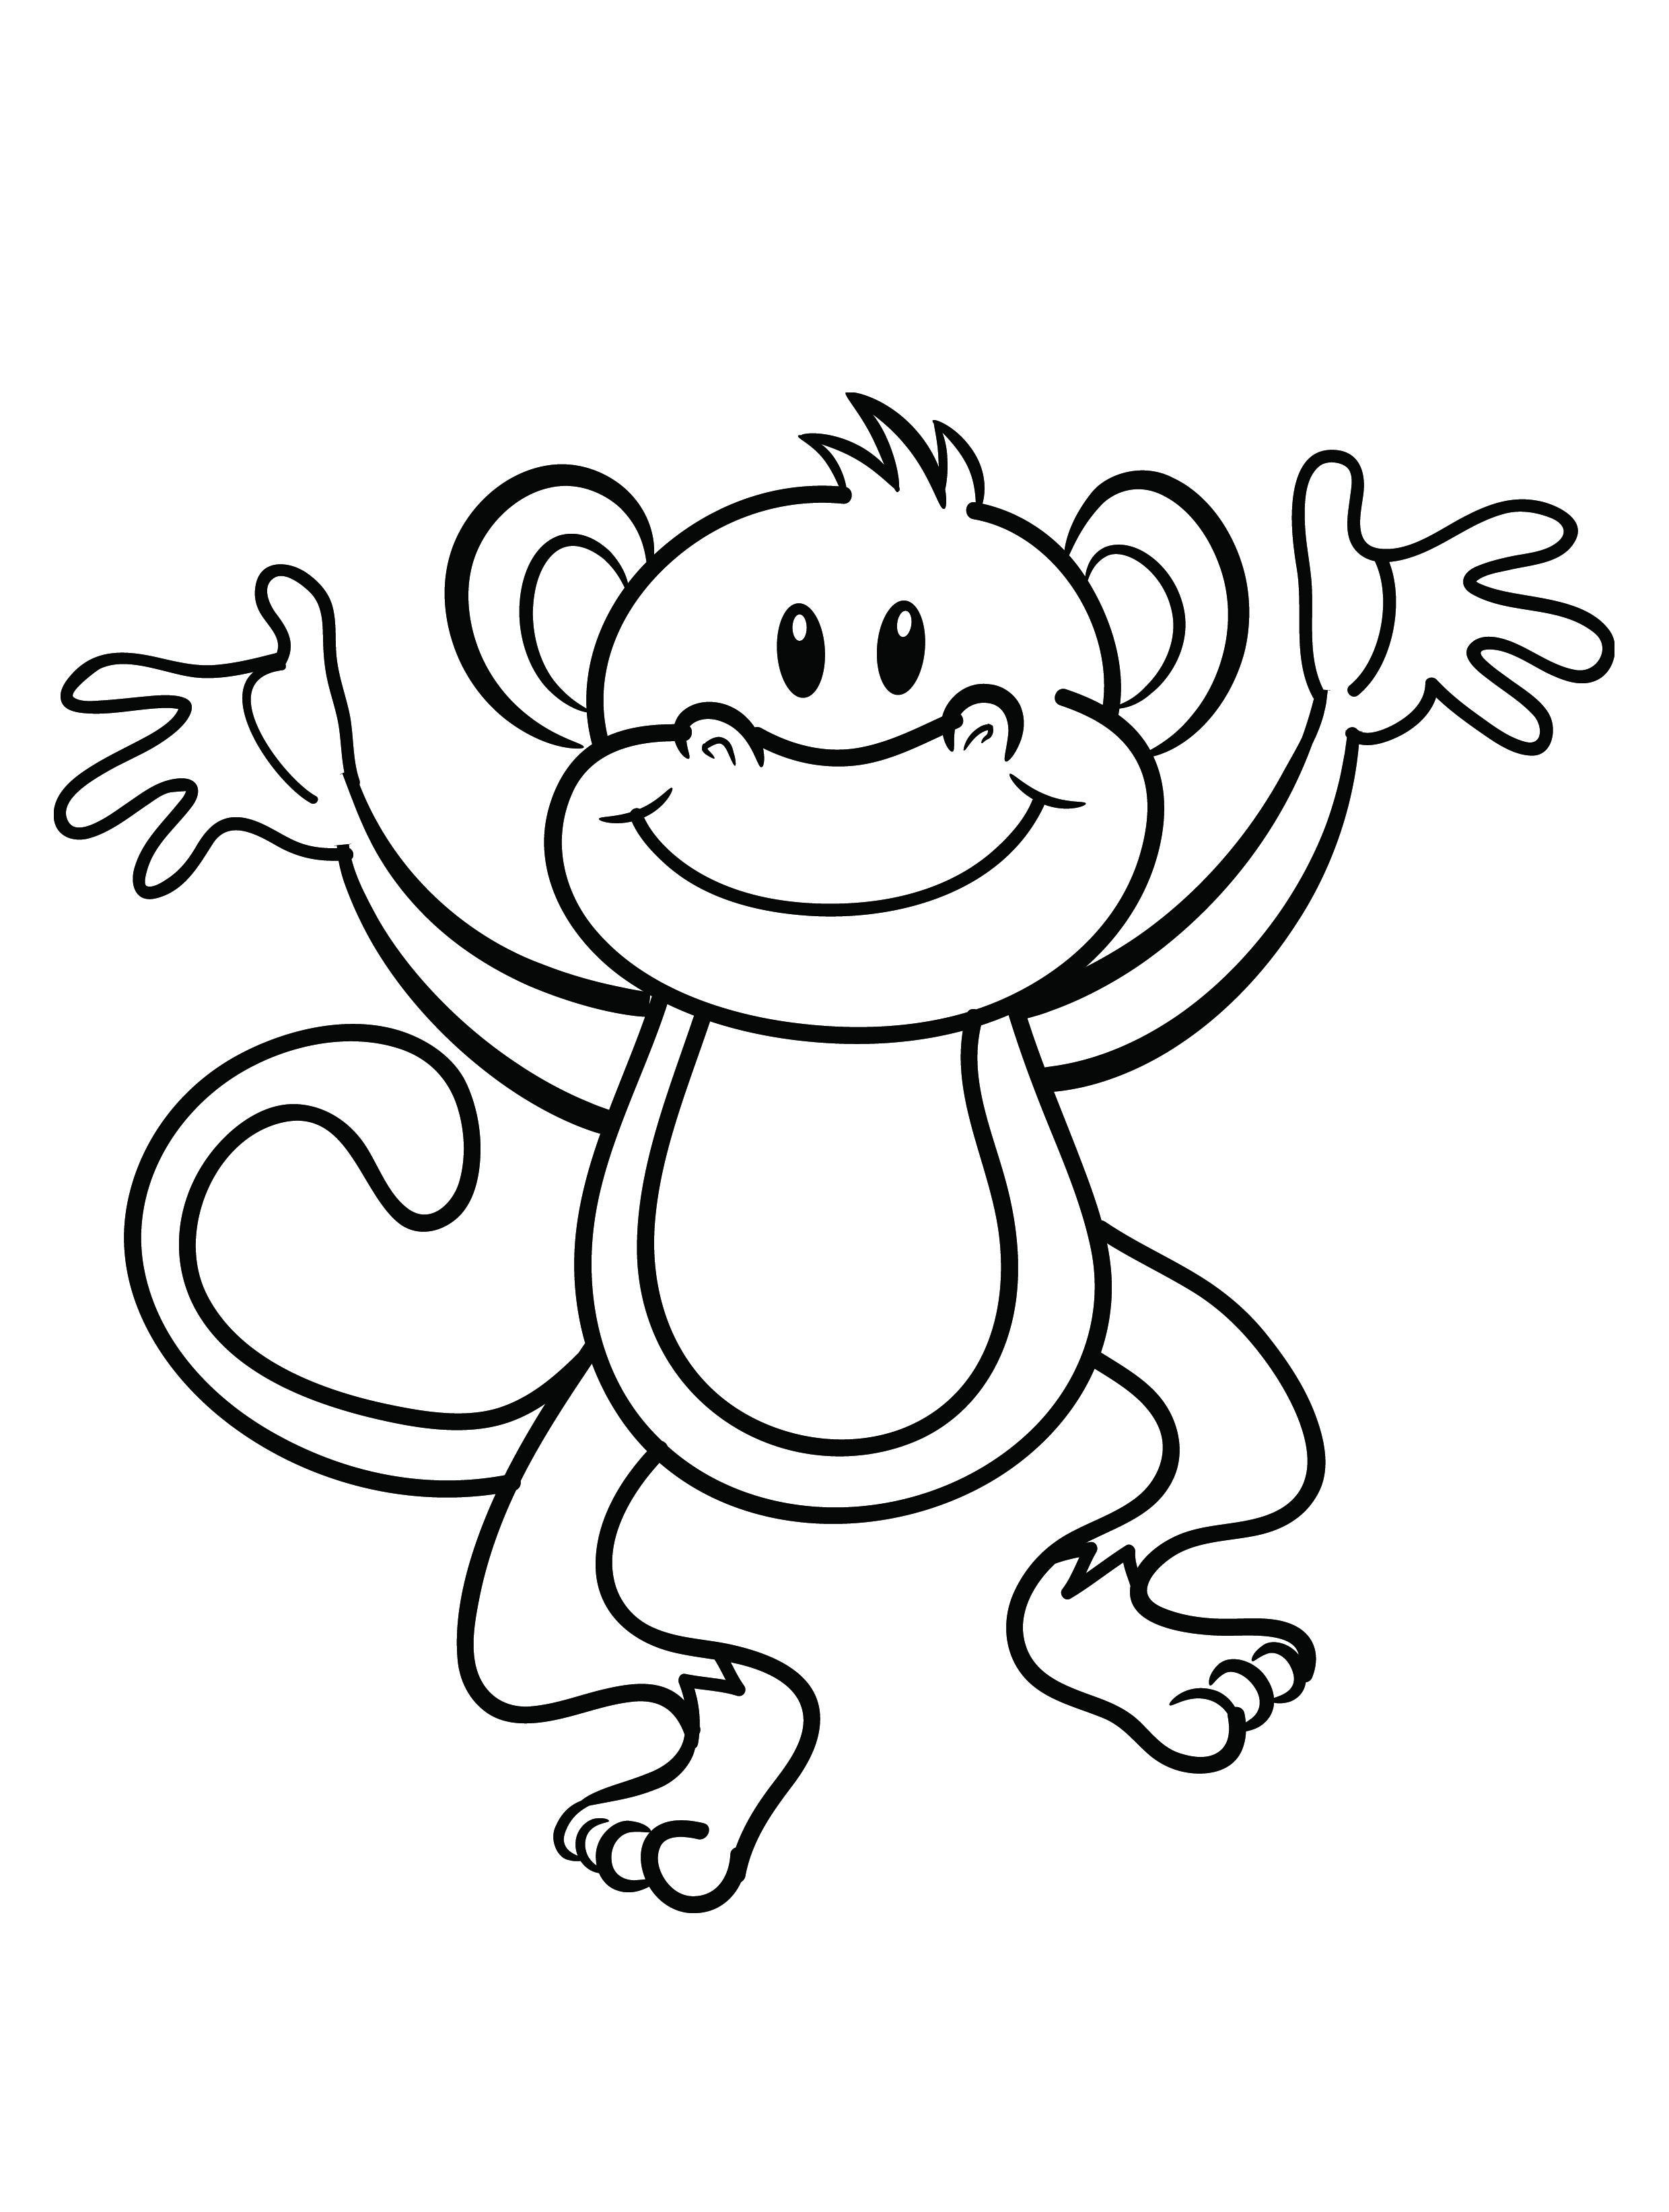 Coloring Pages For Kids | Free download best Coloring Pages ...